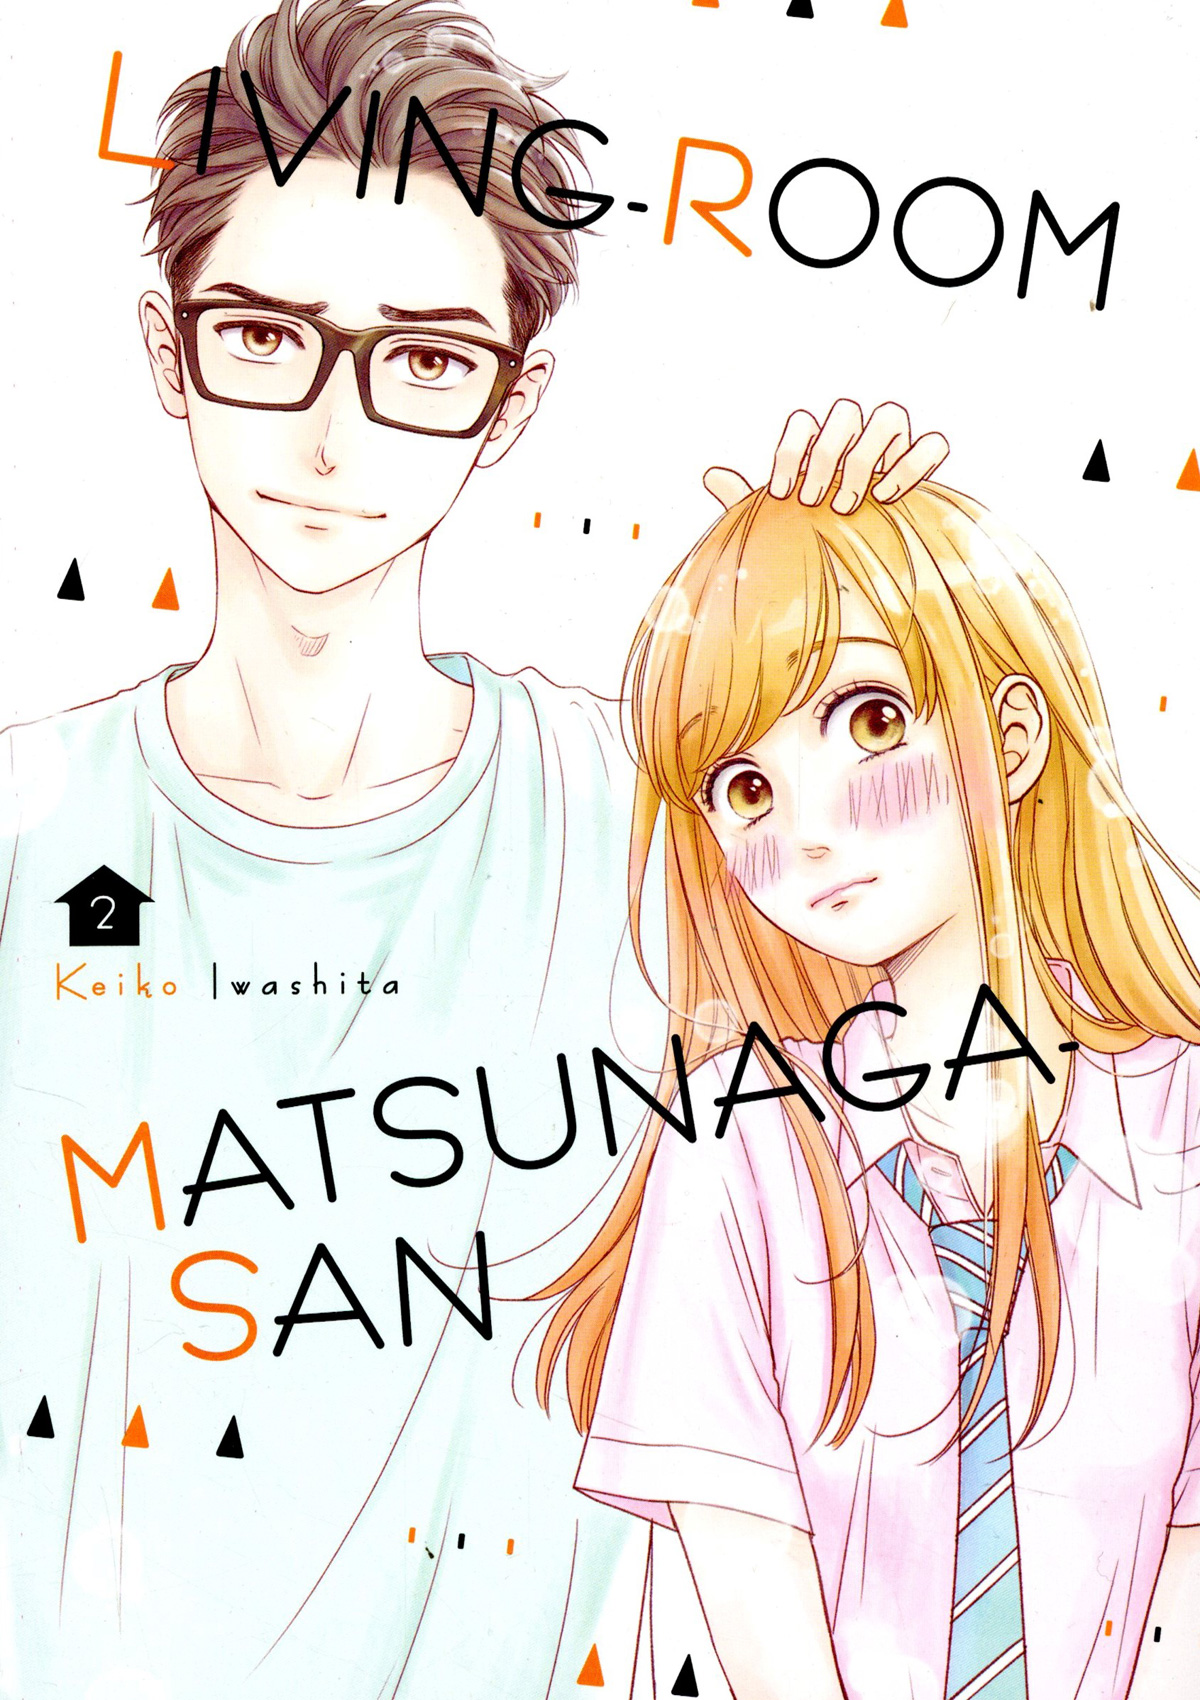 Living-Room Matsunaga-San Vol 2 GN